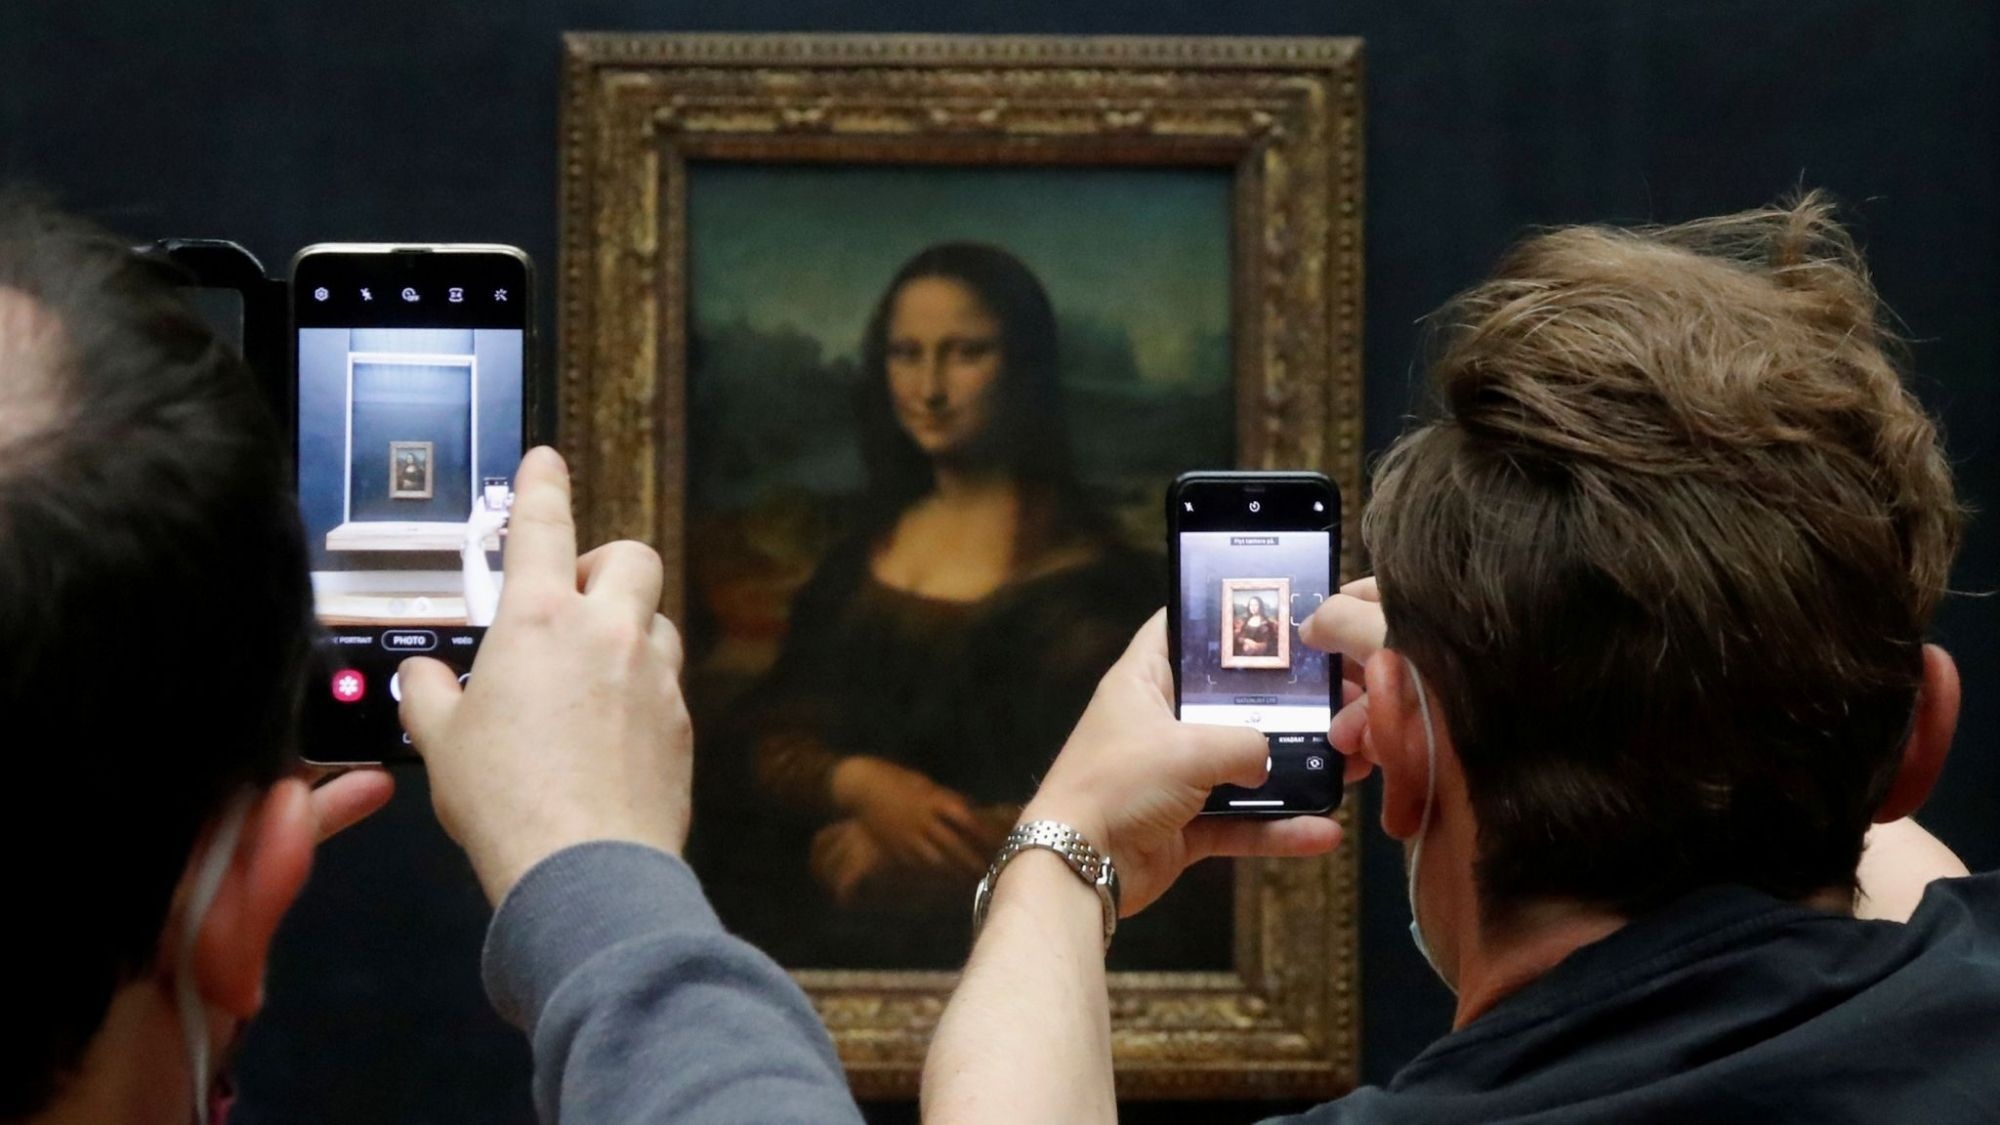 The Louvre goes online to satisfy art lovers around the world for free!